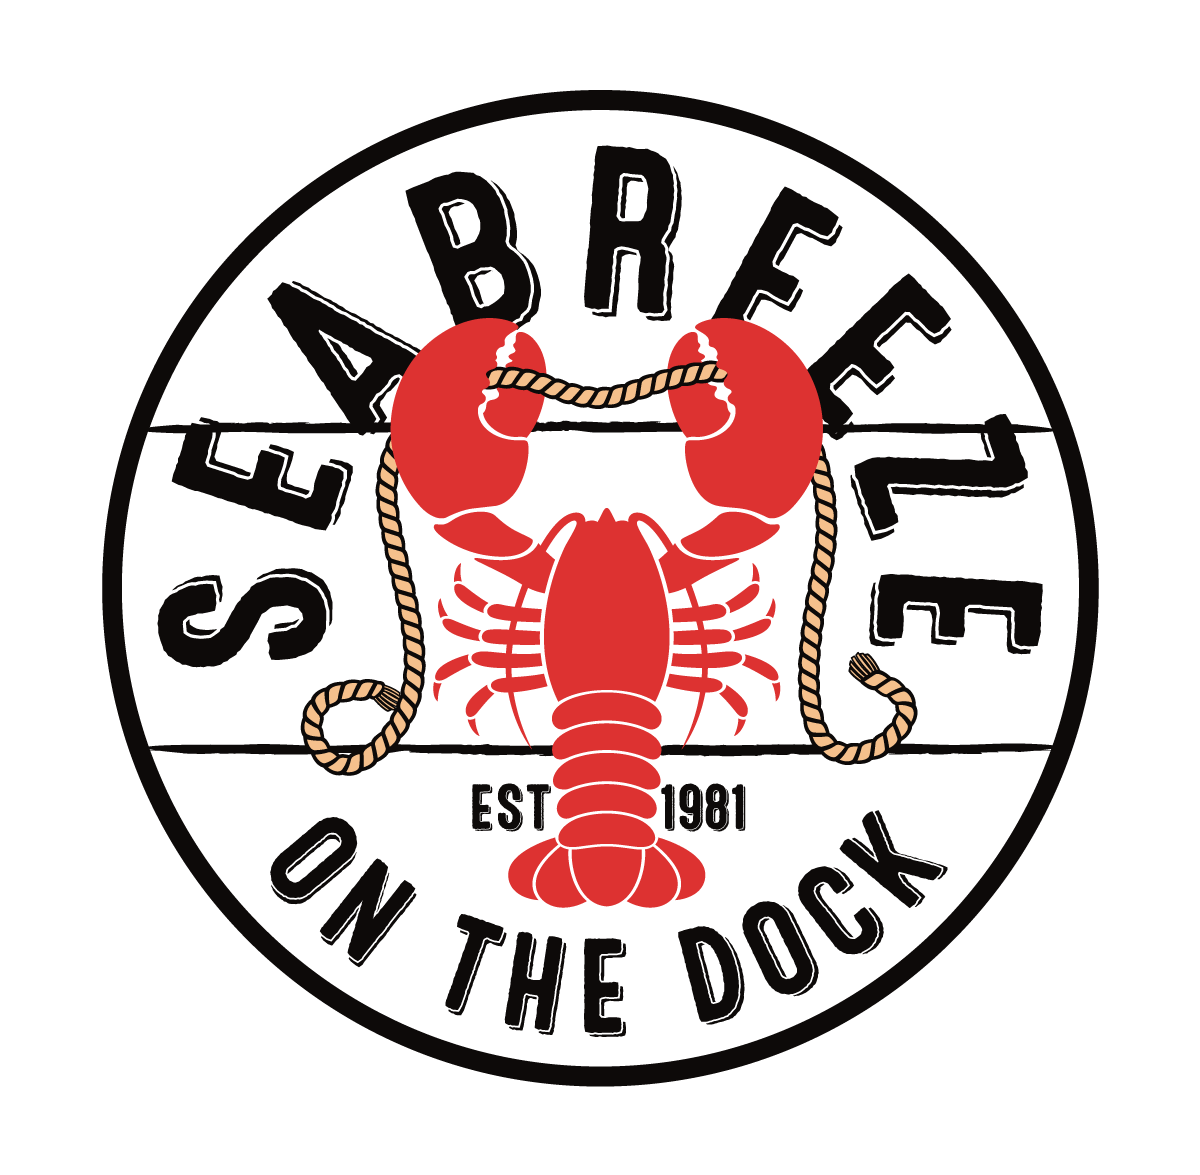 Seabreeze On The Dock